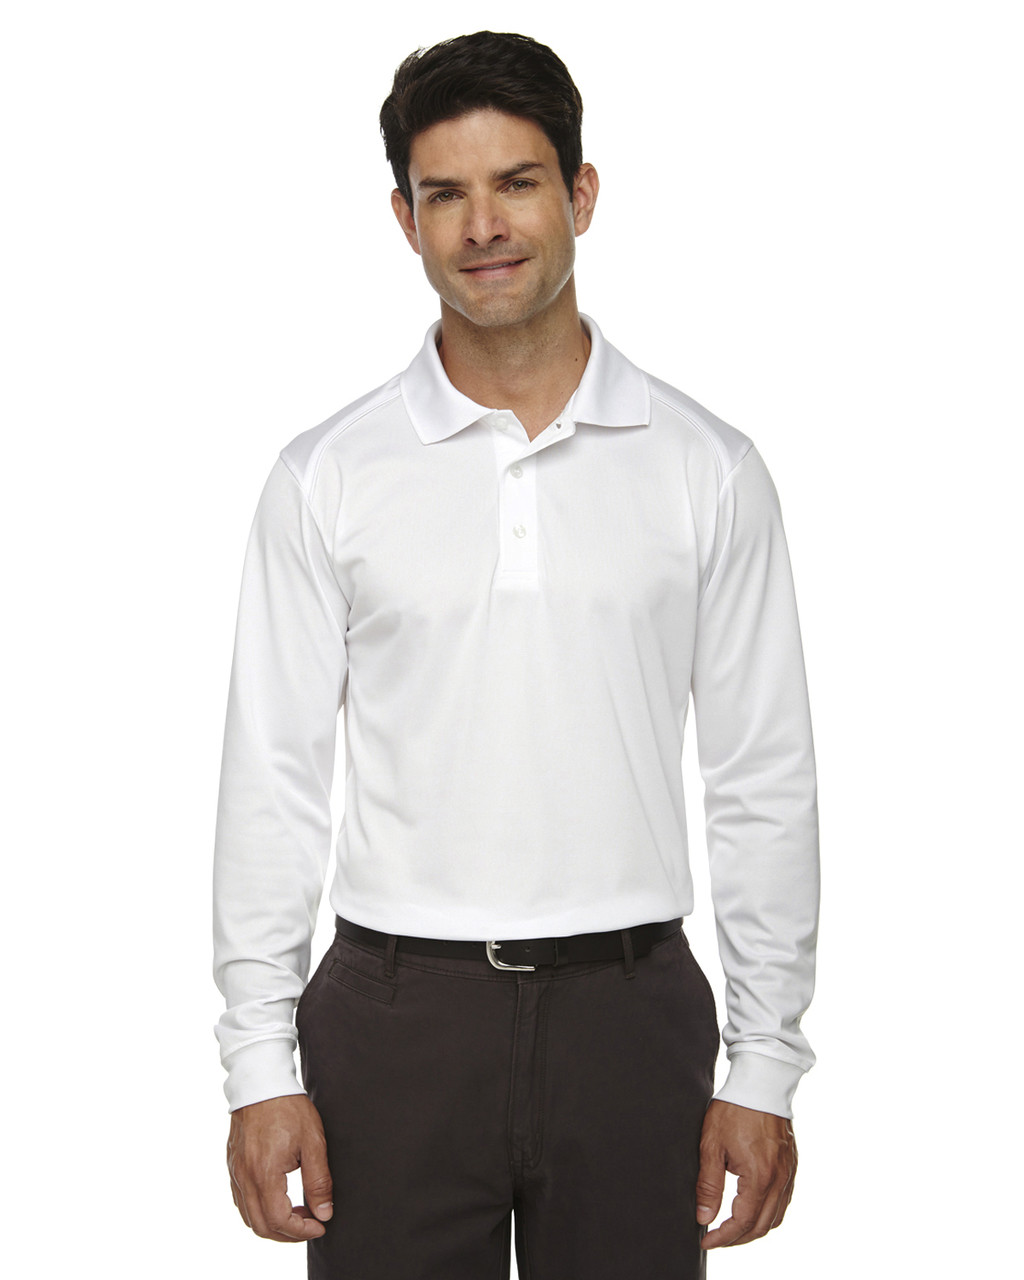 White - 85111 Ash City - Extreme Eperformance Men's Long-Sleeve Polo Shirt